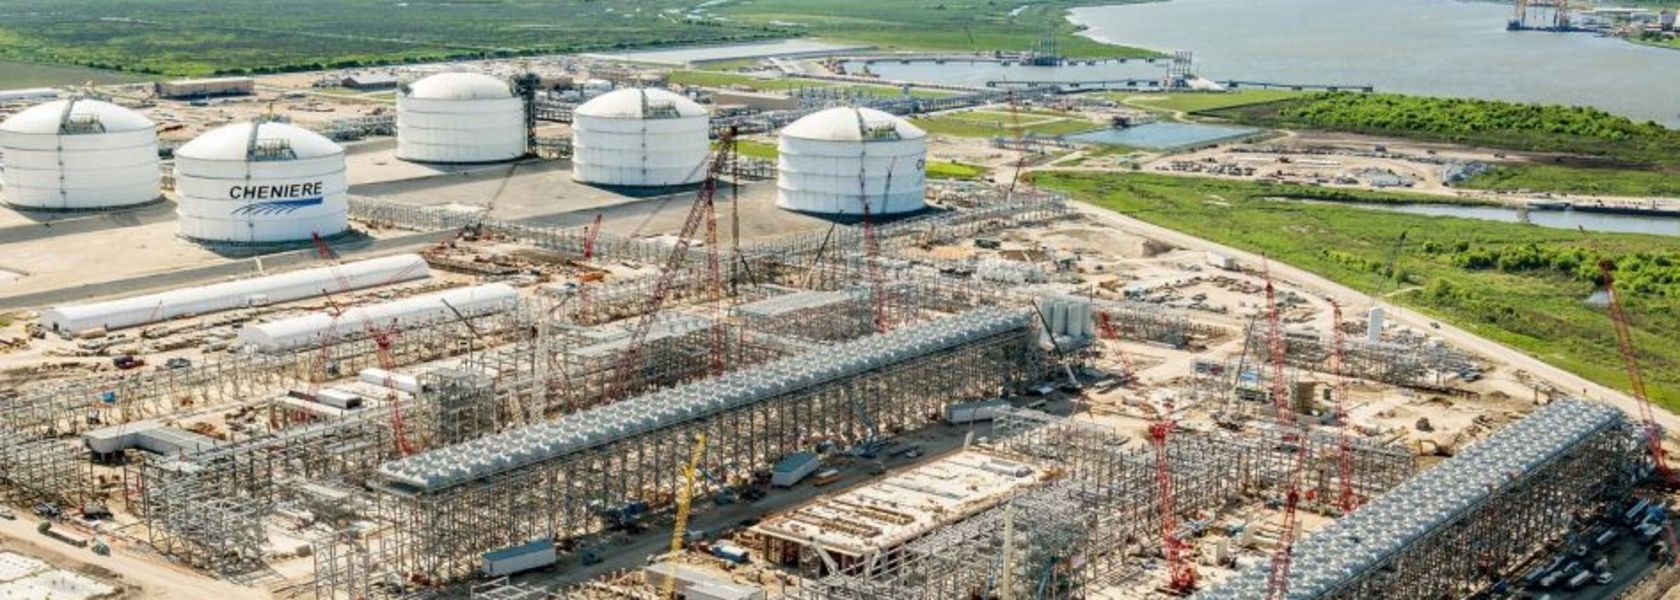 US to accelerate LNG export approvals - Energy News Bulletin